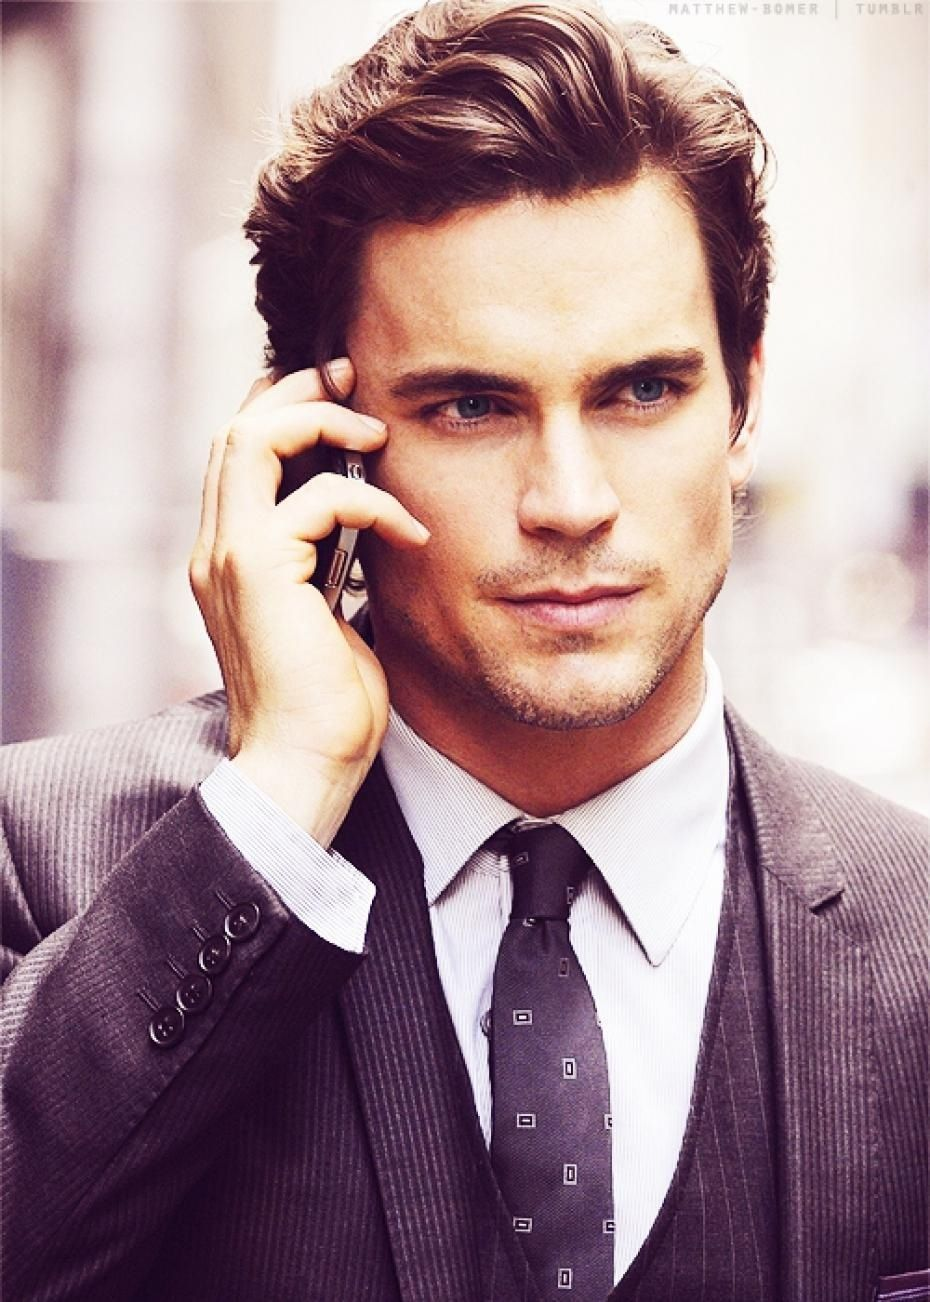 Someone Please Explain To Me Why He Wasn T Cast As Christian Grey